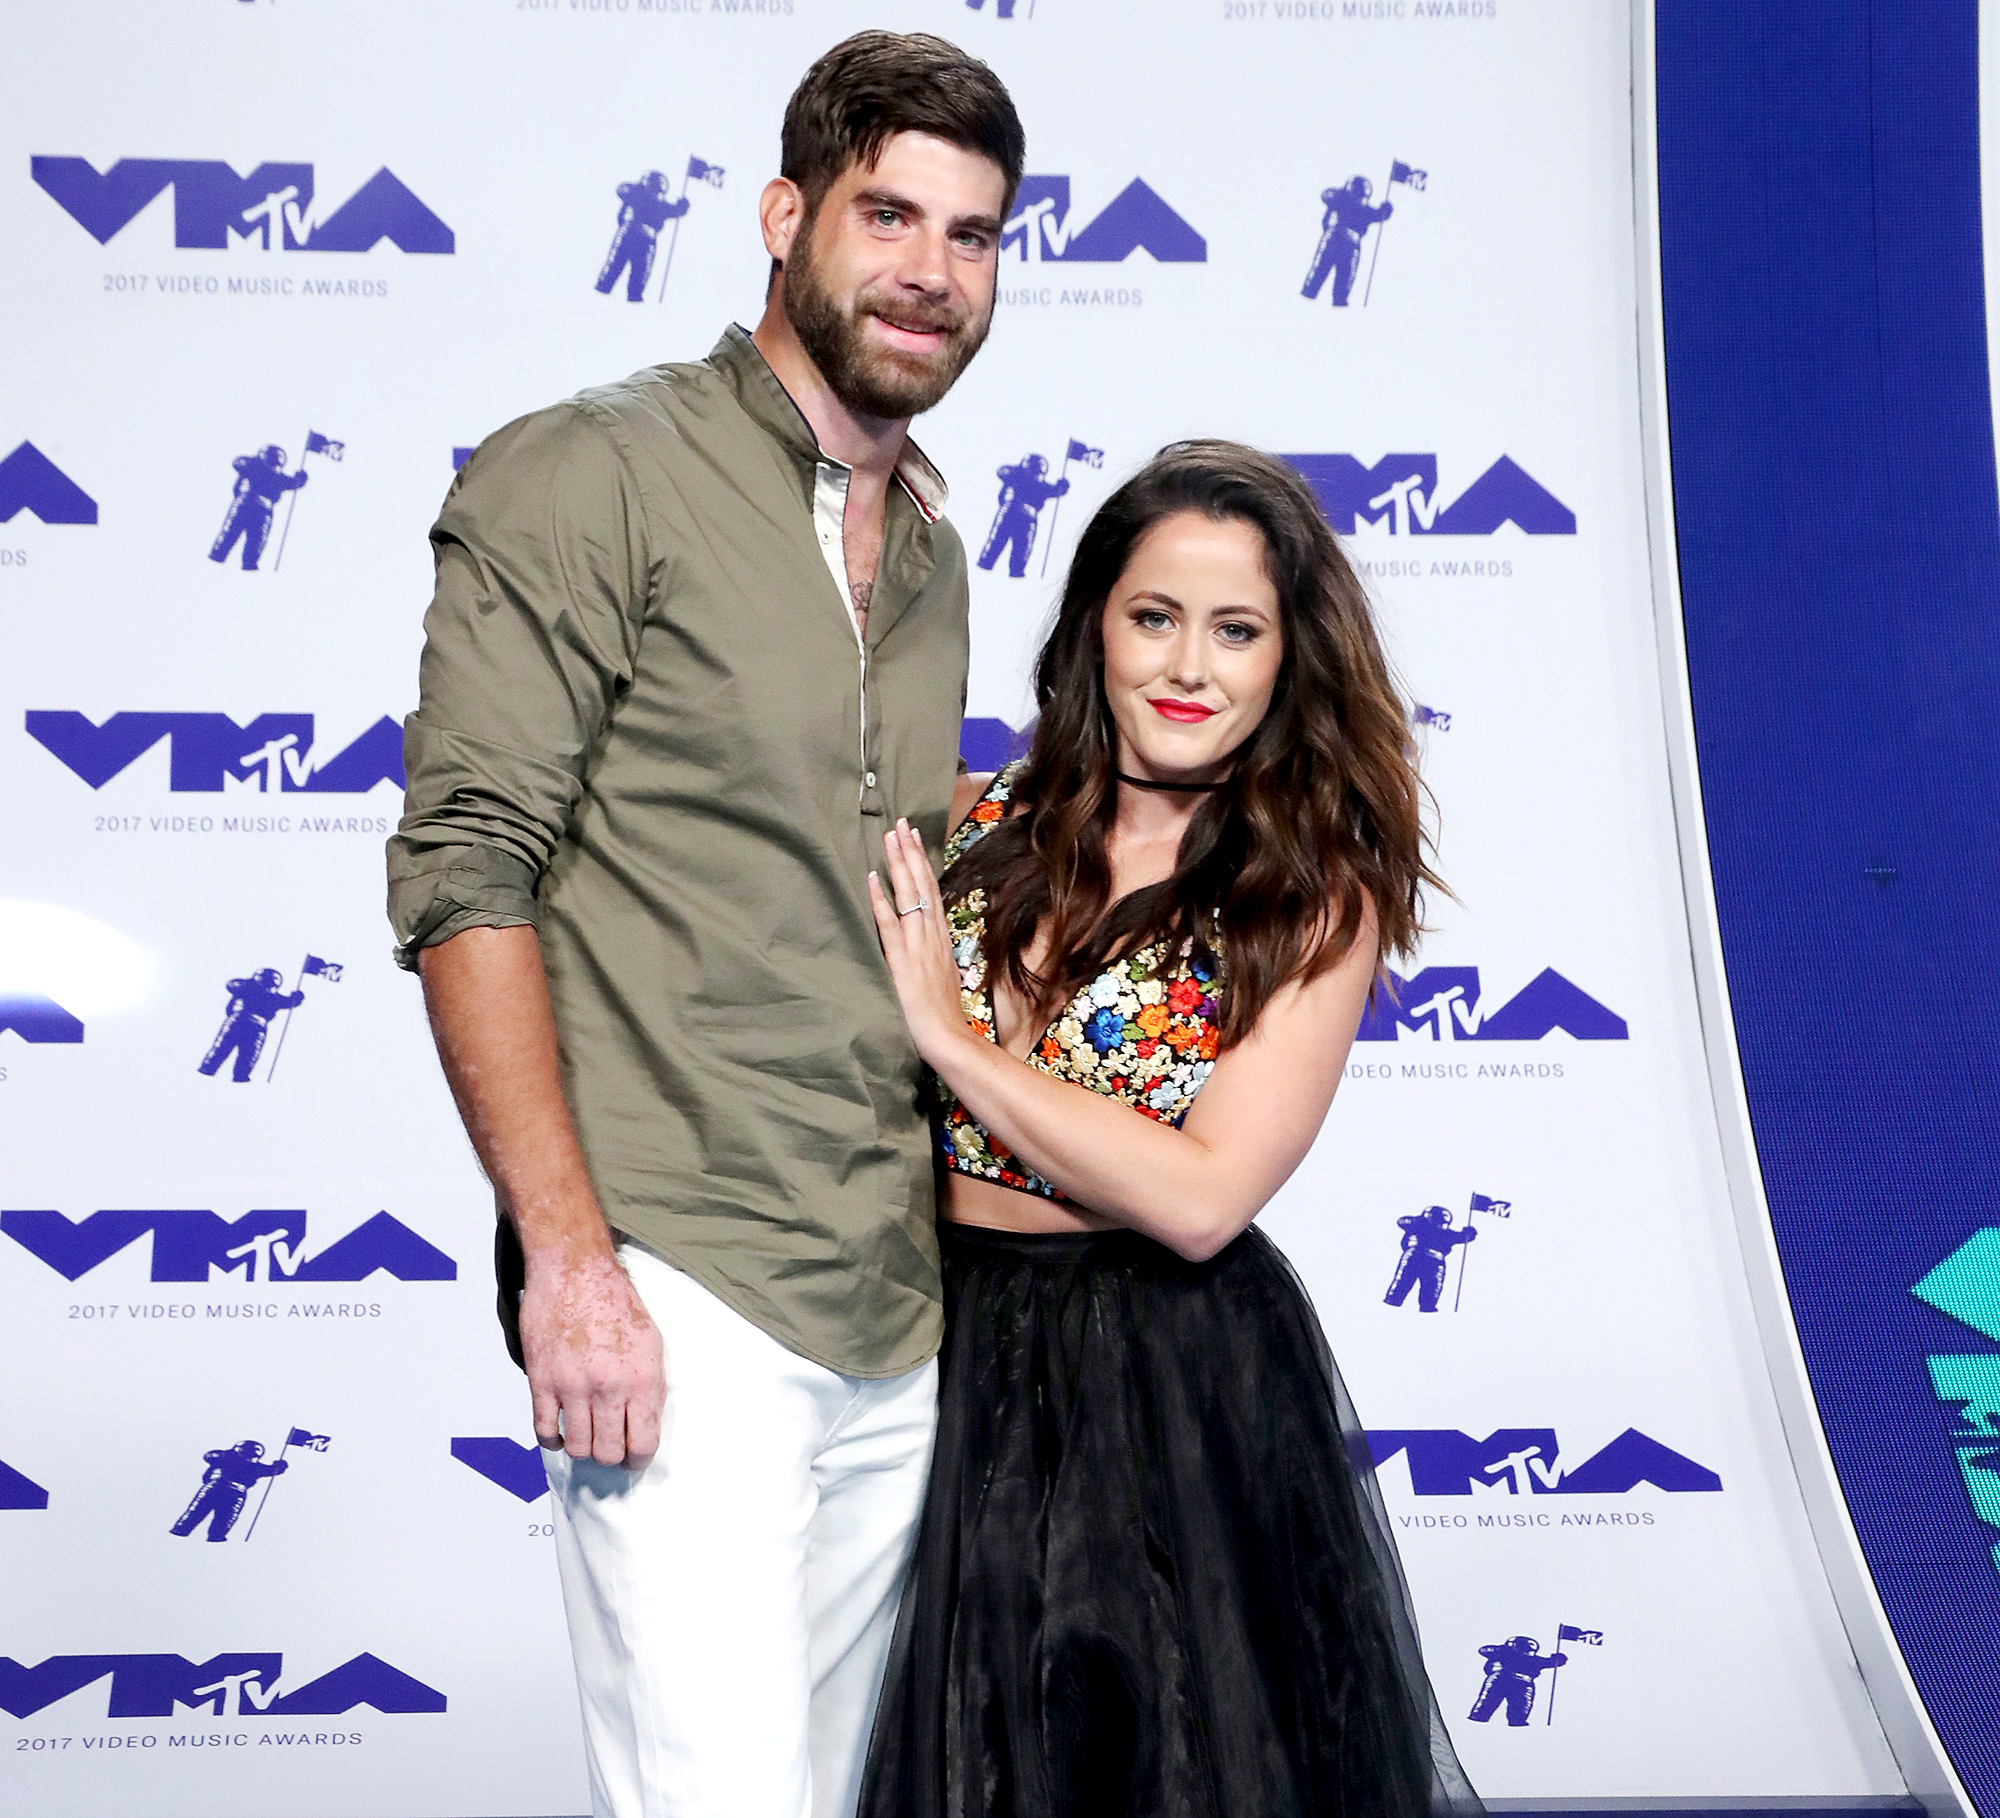 Jenelle-Evans-Reveals-Whether-She-and-Husband-David-Eason-Want-More-Children